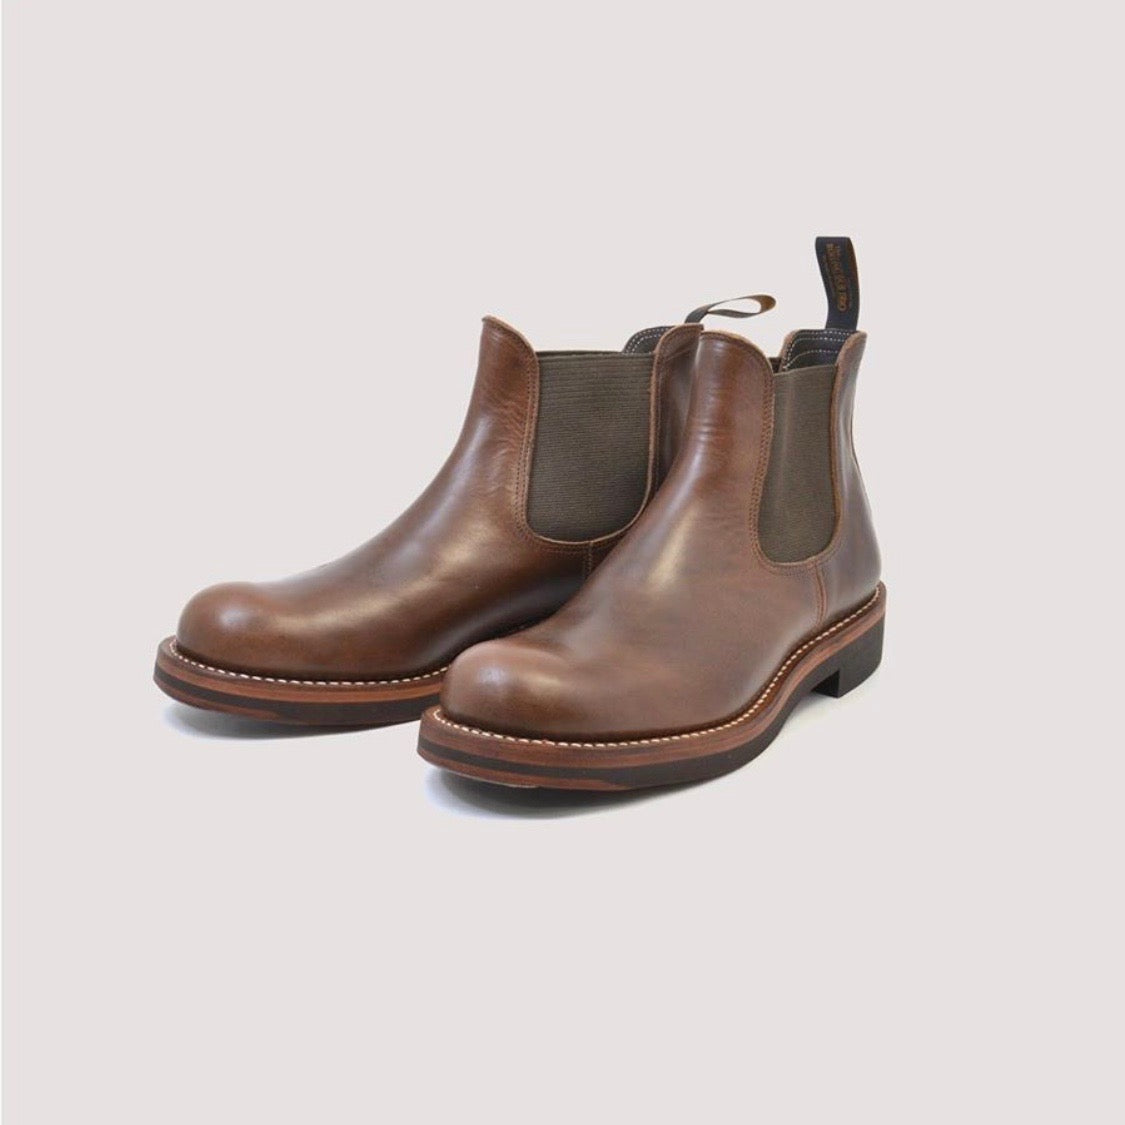 STAN Side-Gore Boot in Oil Brown